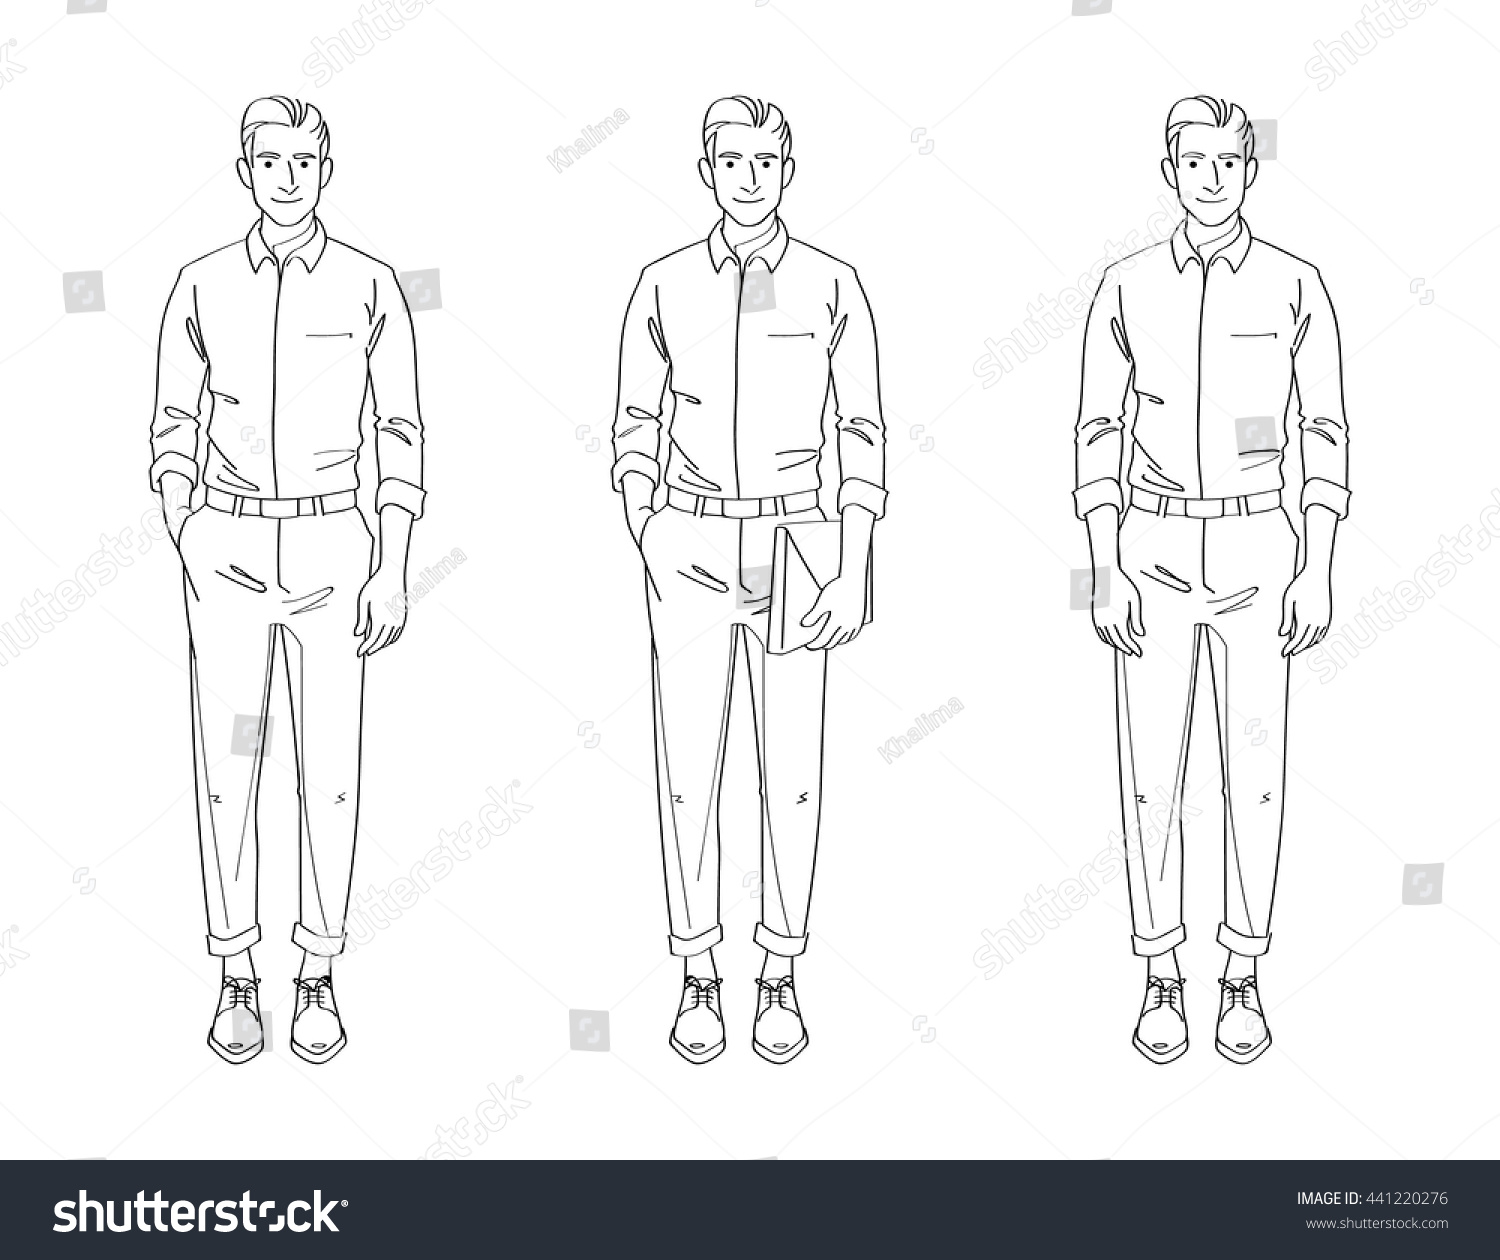 Line Art Man : Line drawing illustration handsome young man stock vector